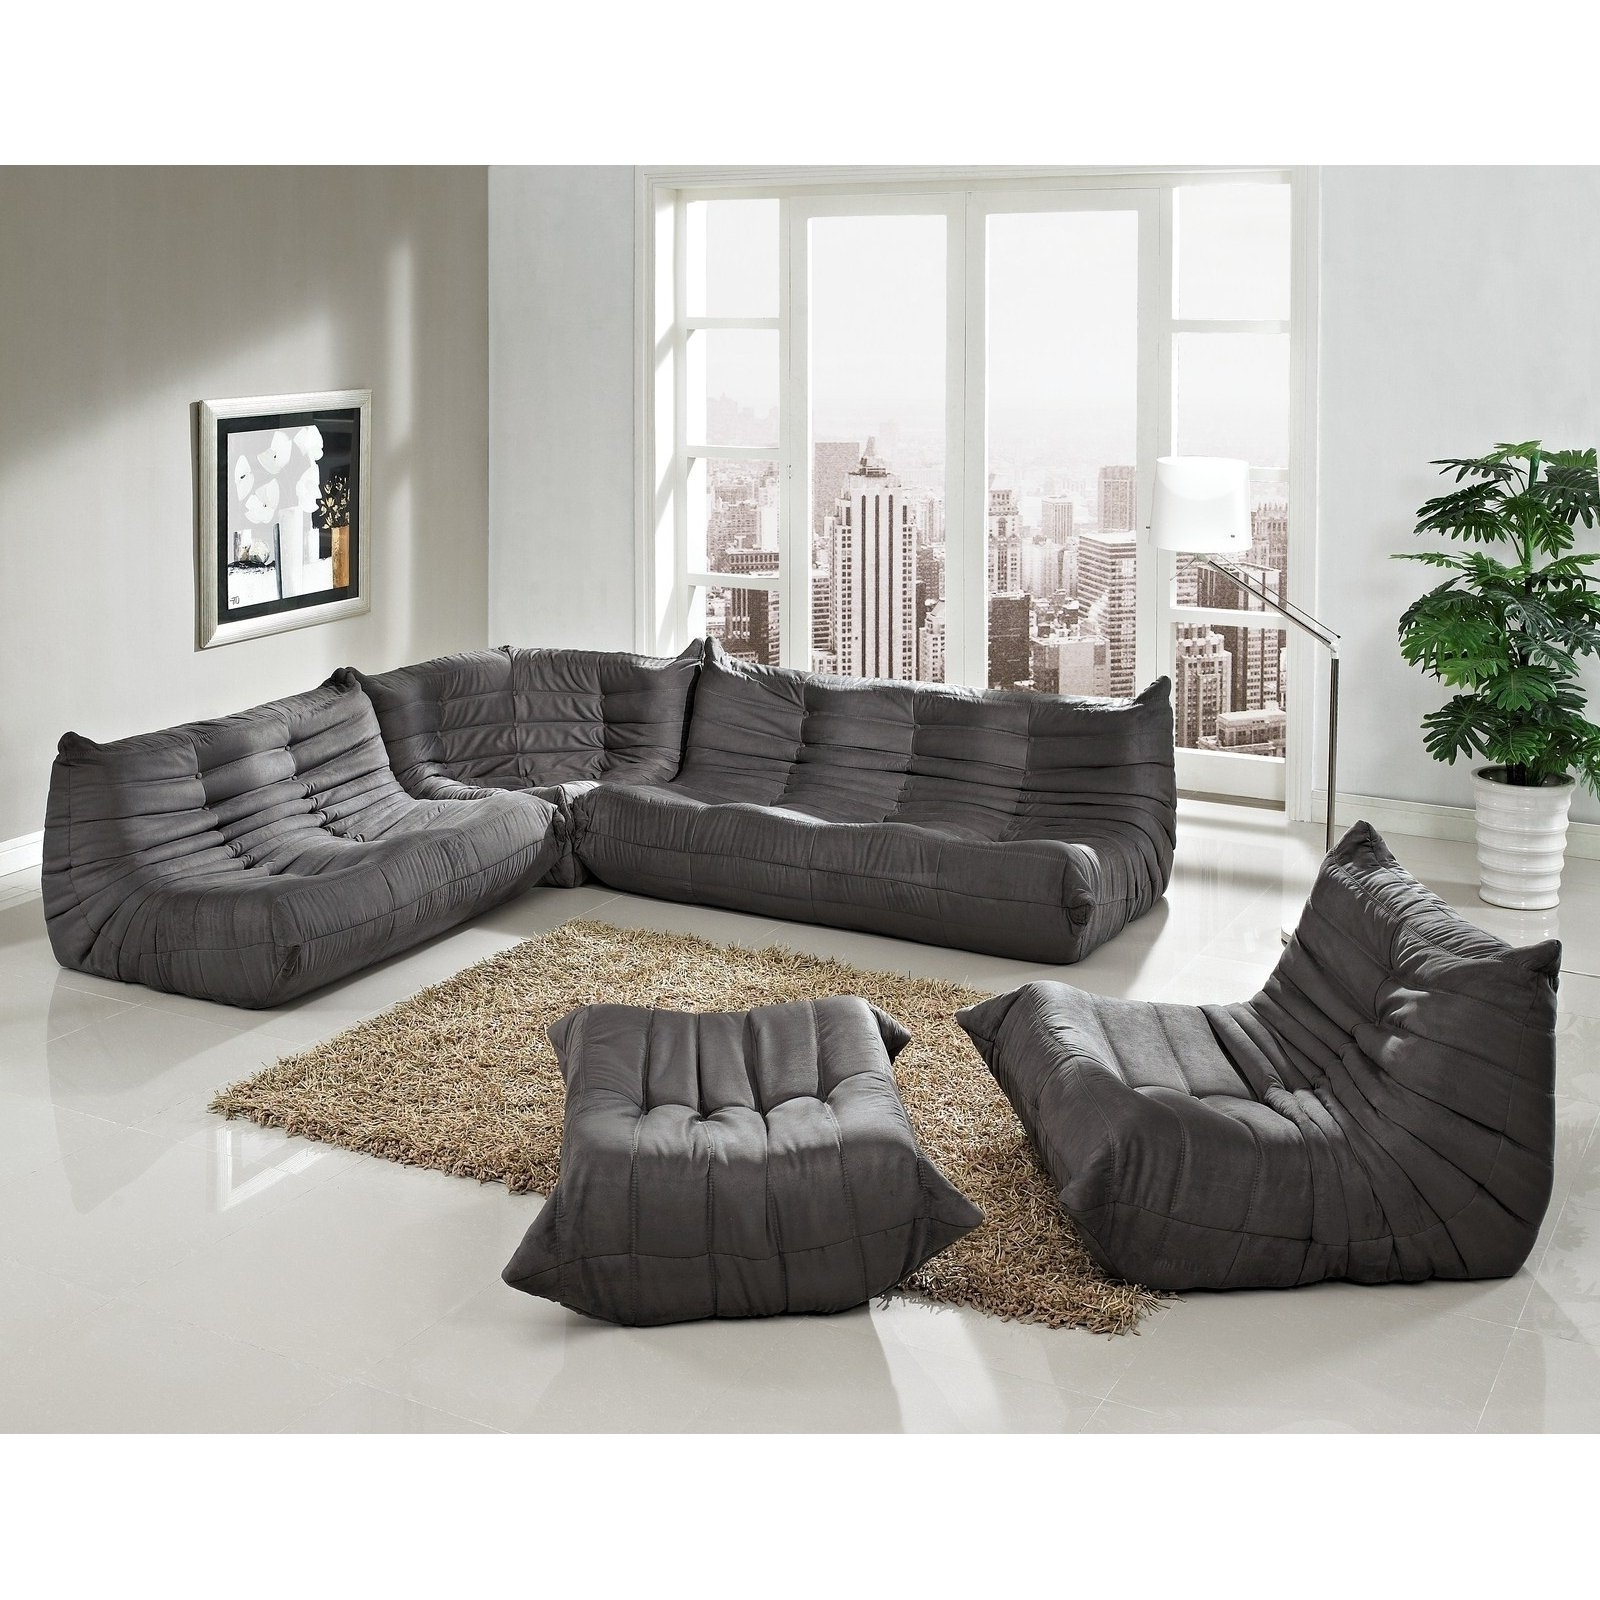 Low Sofas Throughout Trendy Beautiful Low Profile Sectional Sofa 40 On Sofas And Couches Ideas (View 7 of 15)